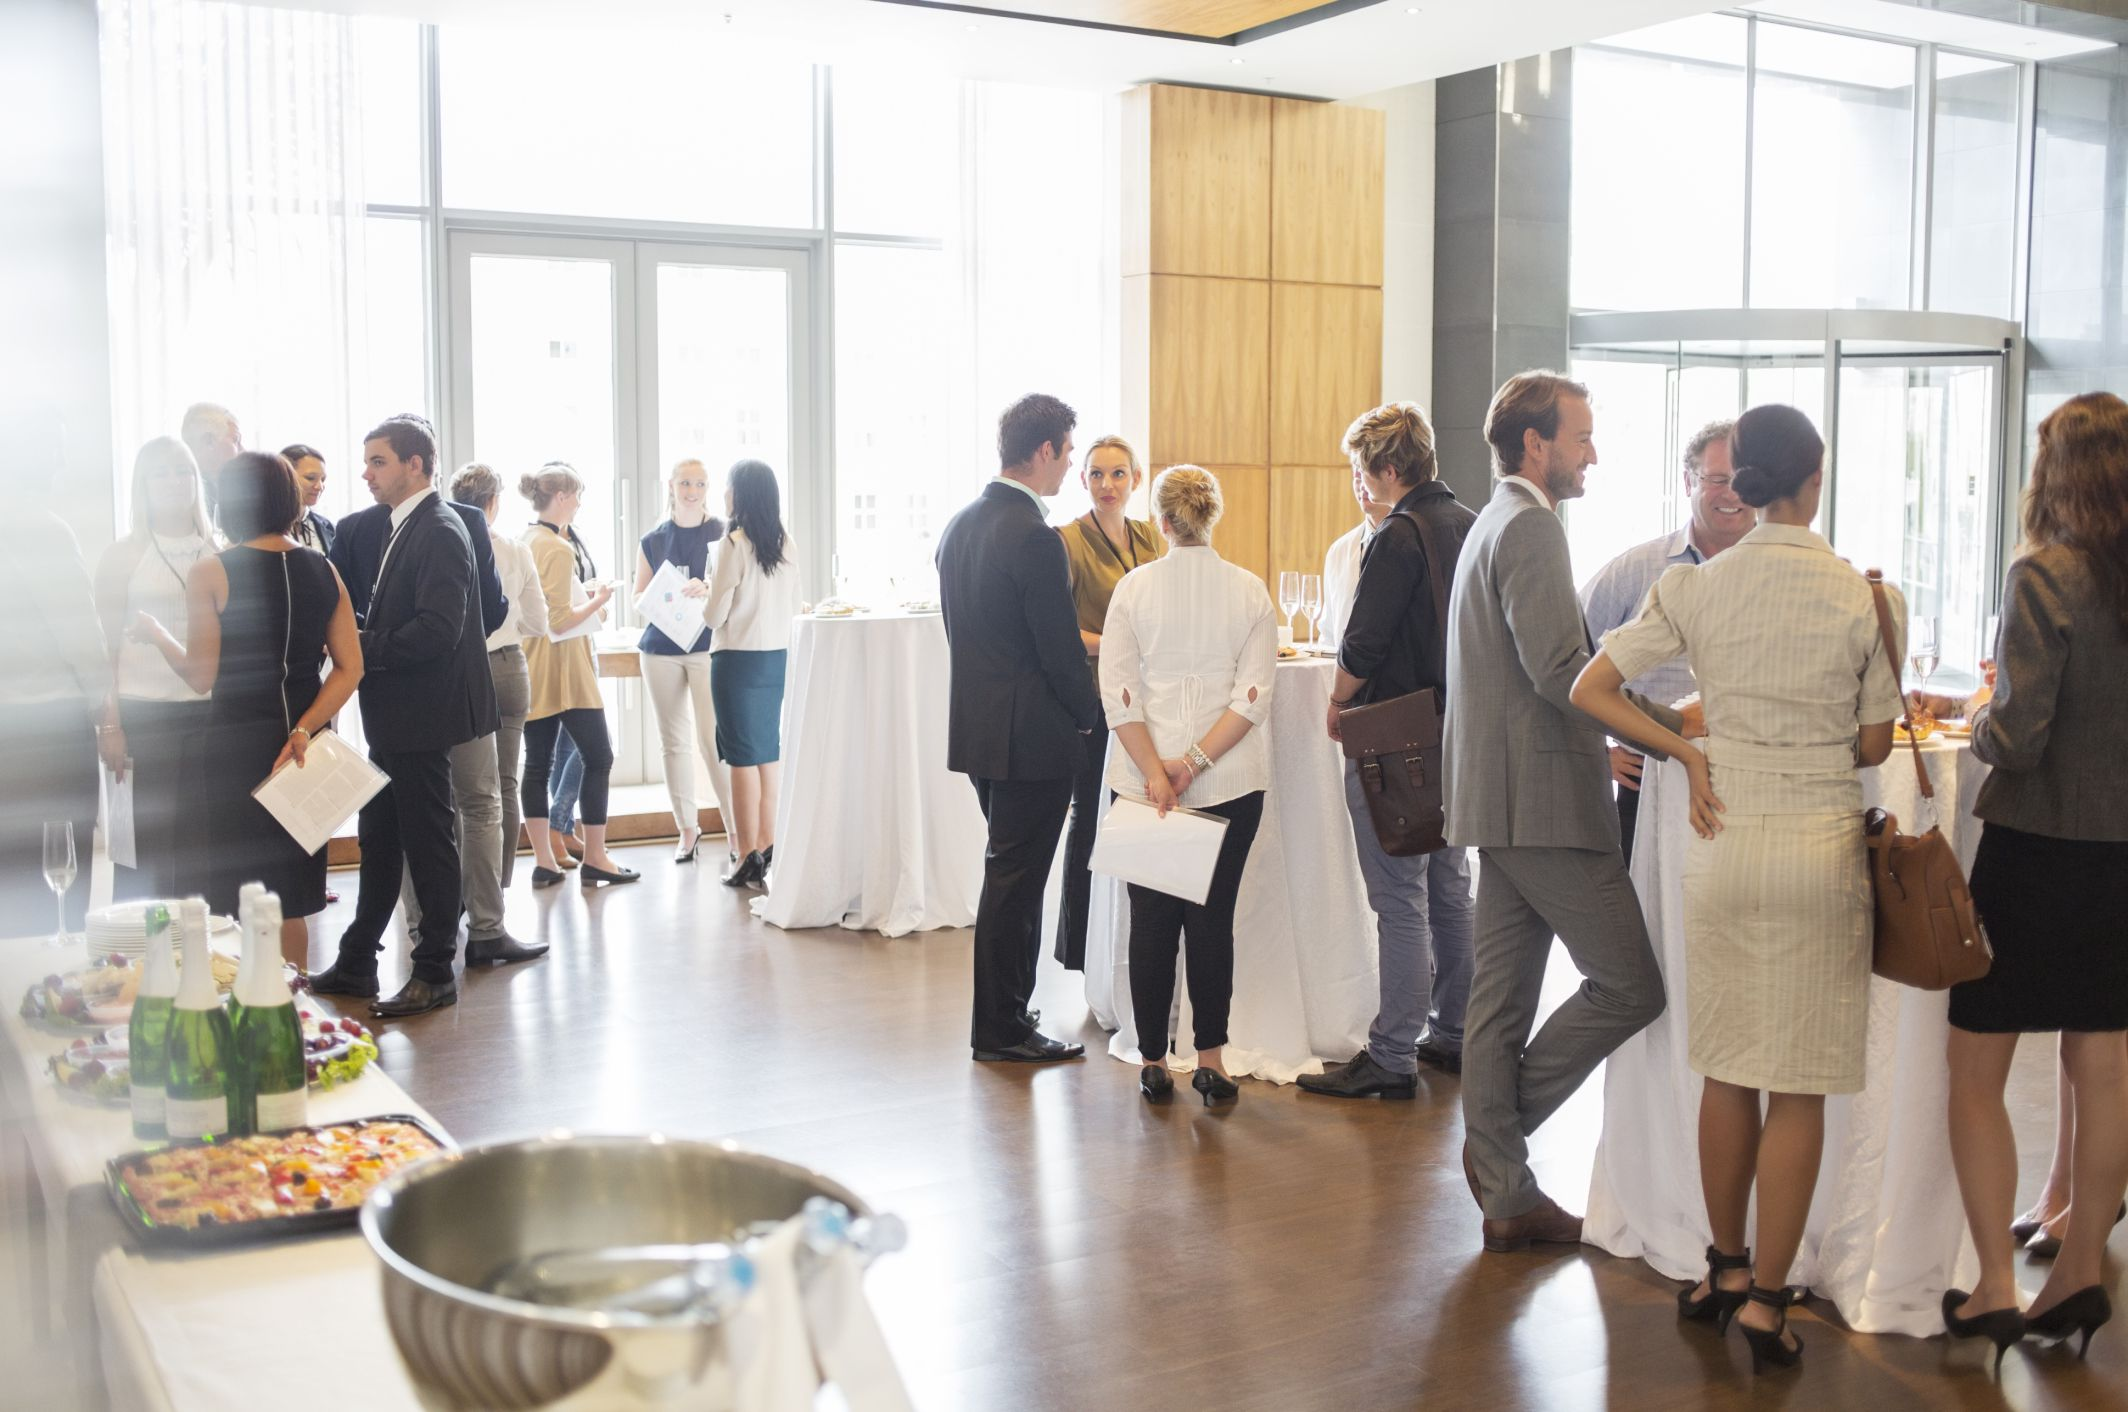 My 3 Keys to Professional Networking